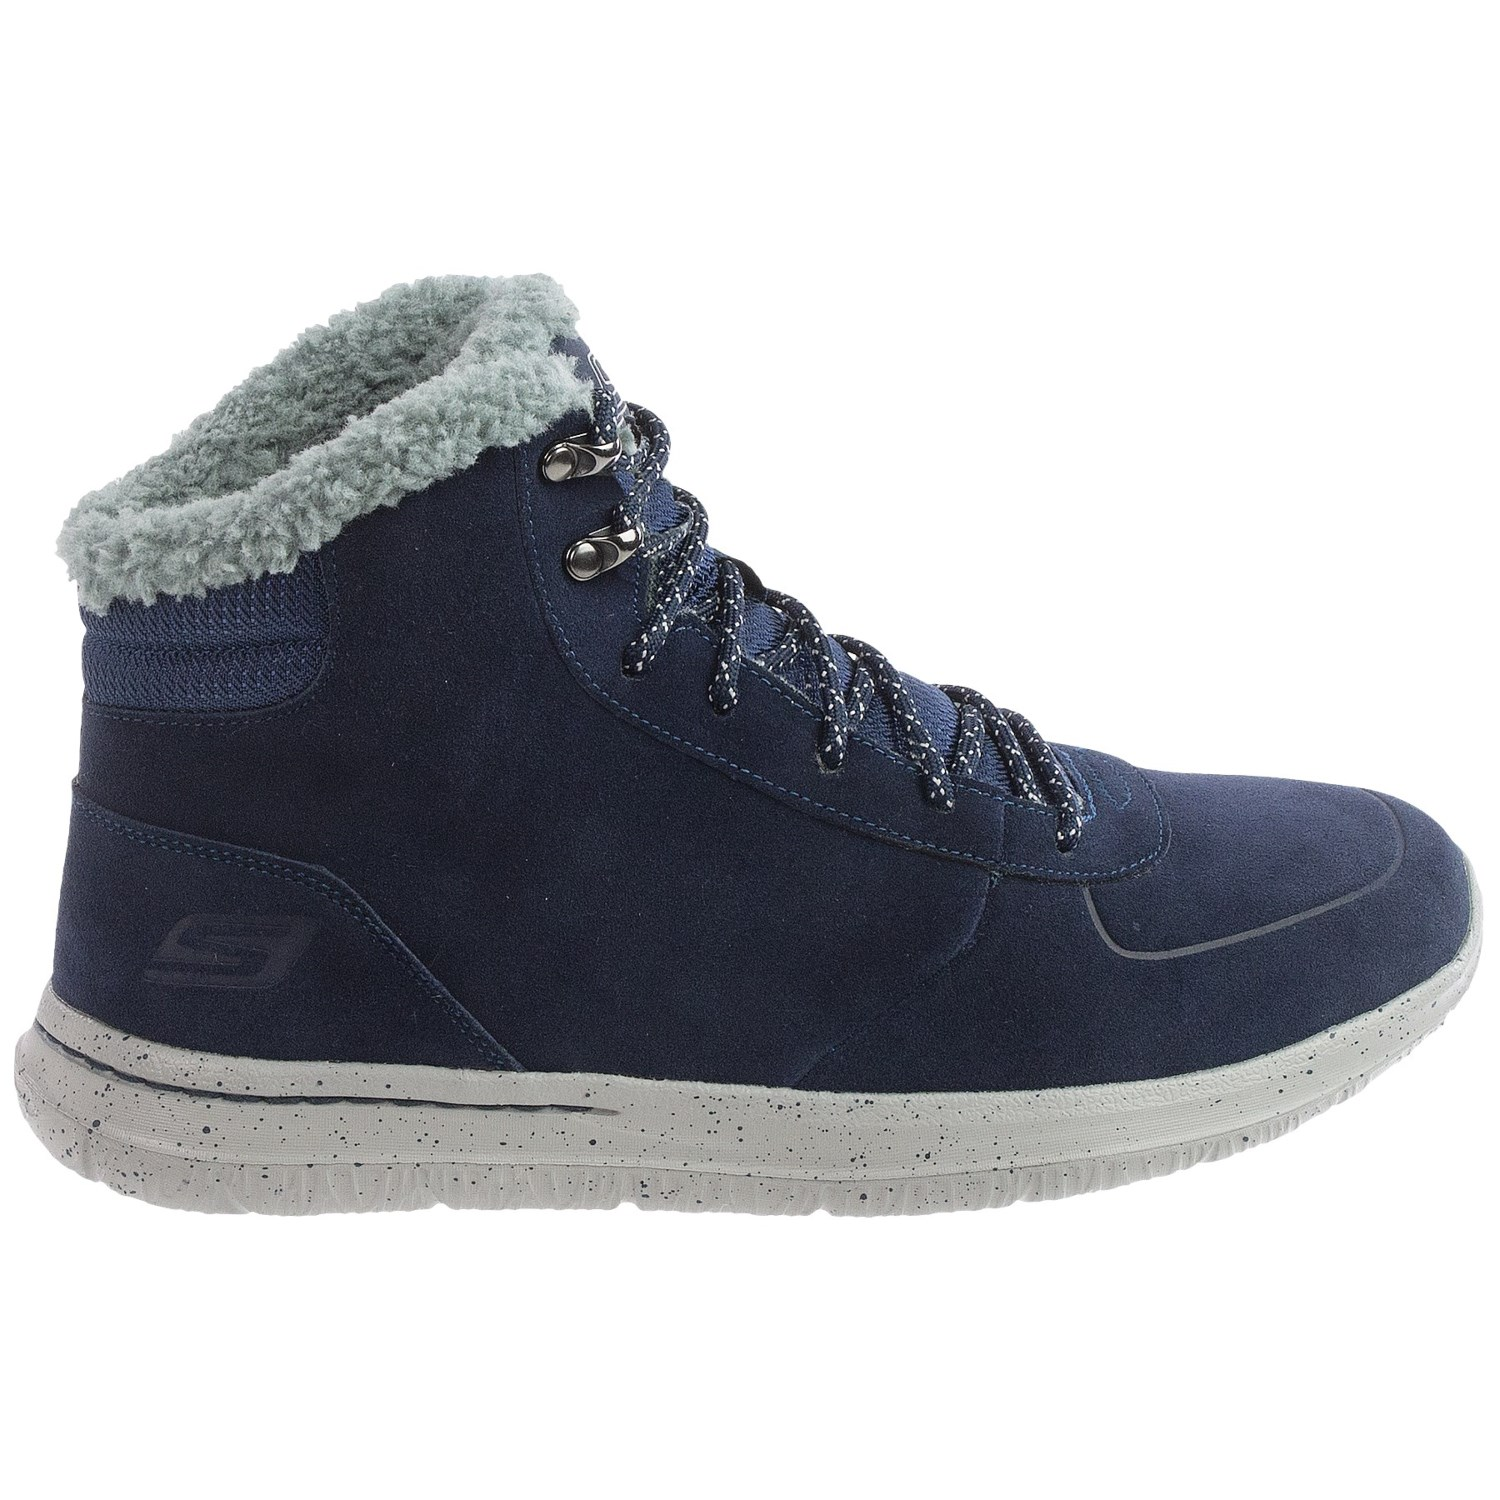 skechers gowalk city suede ankle boots for